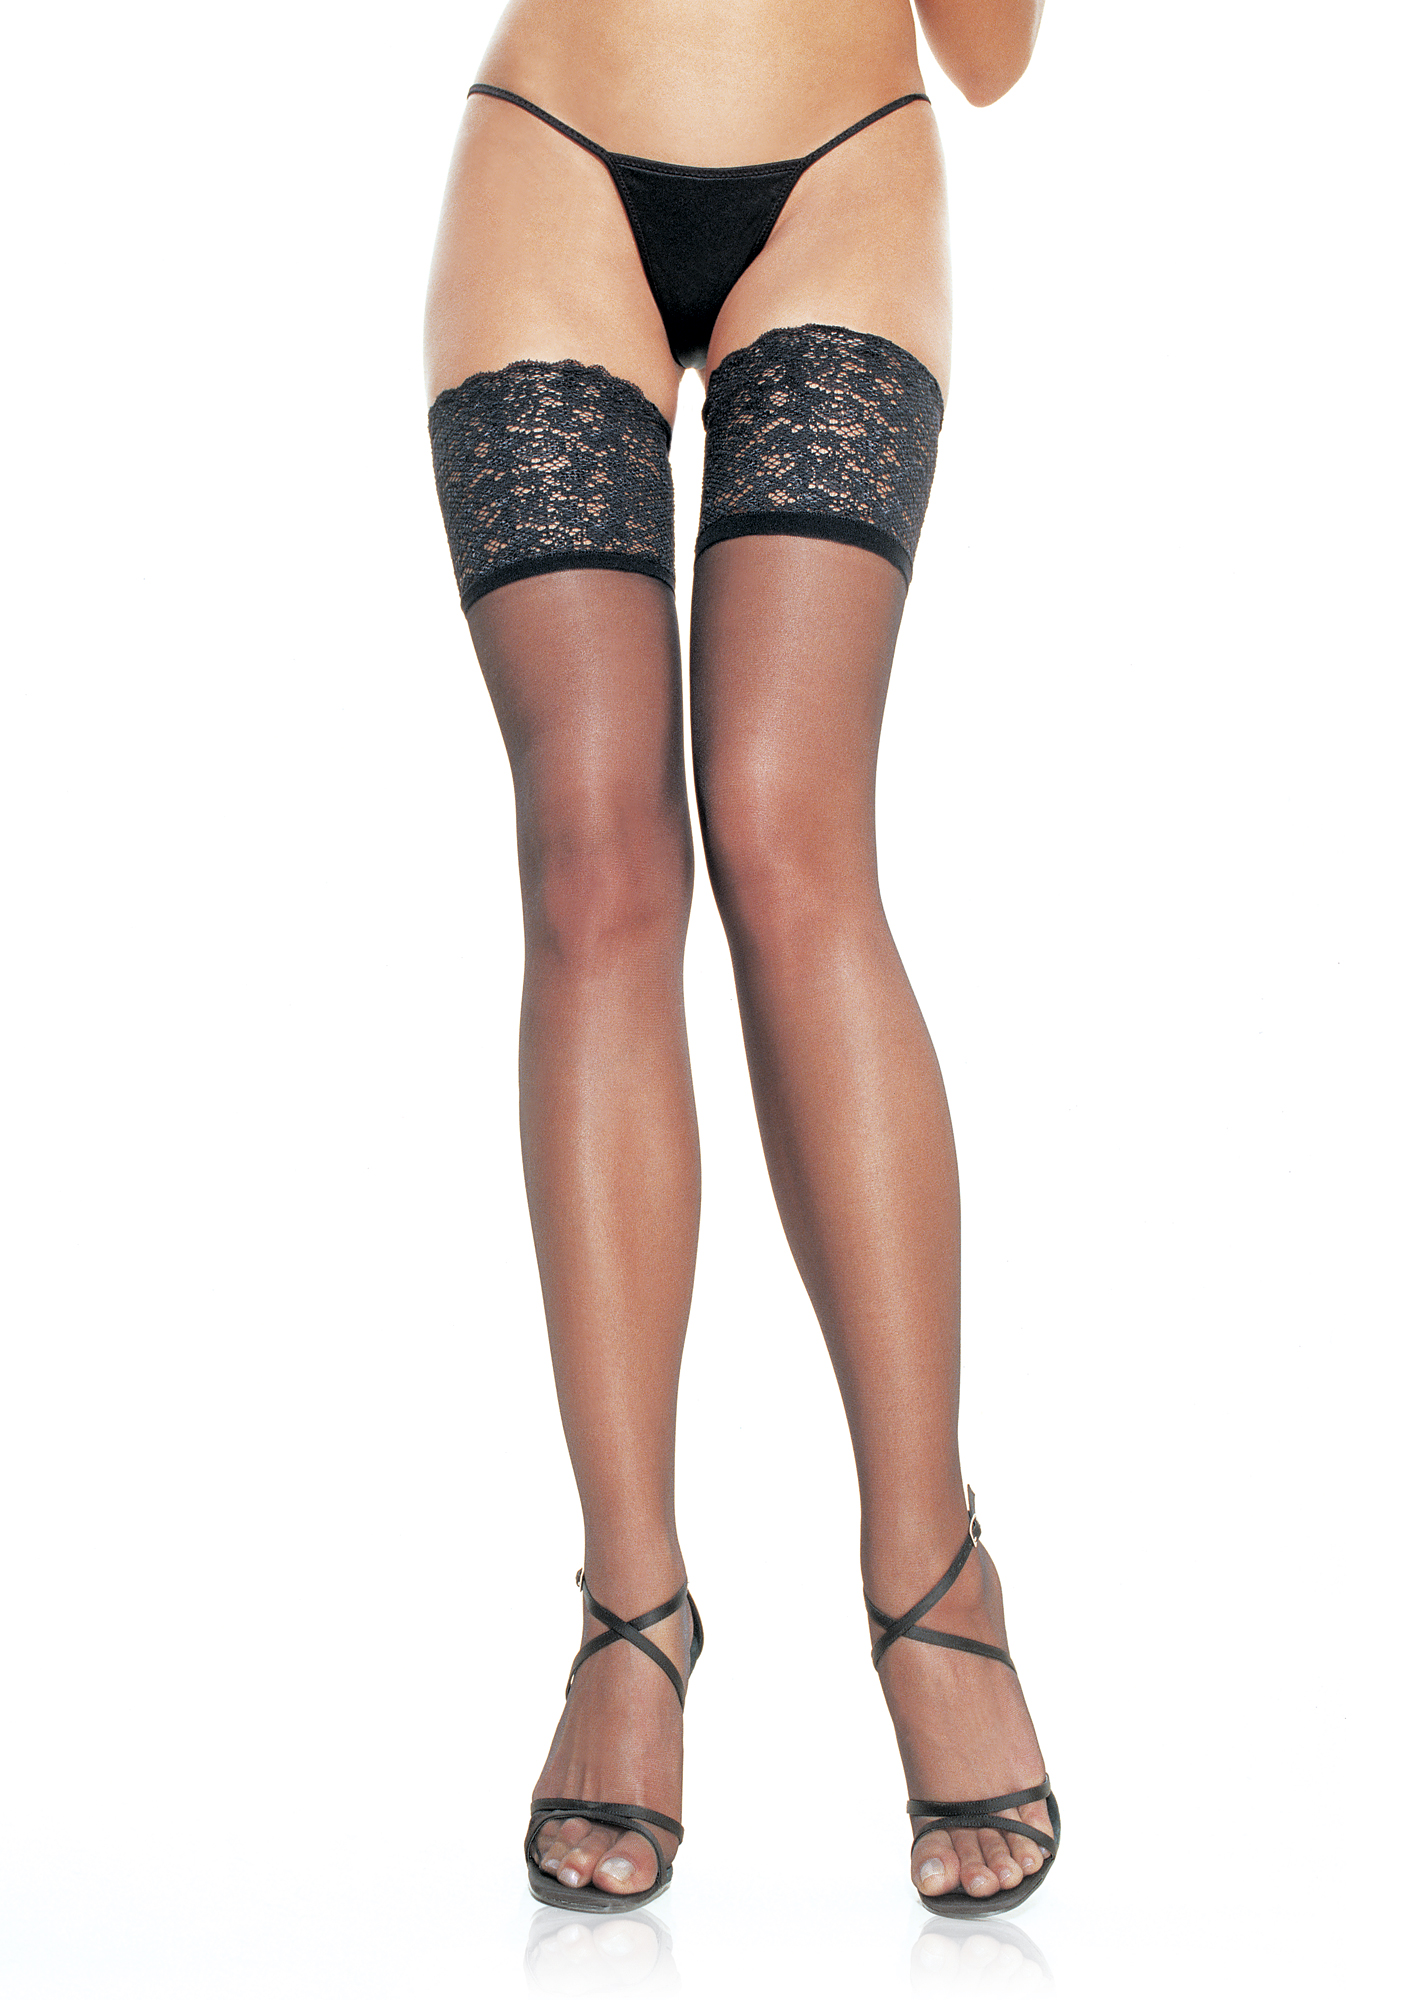 Wide Lace Stay Up Stockings Edmonton